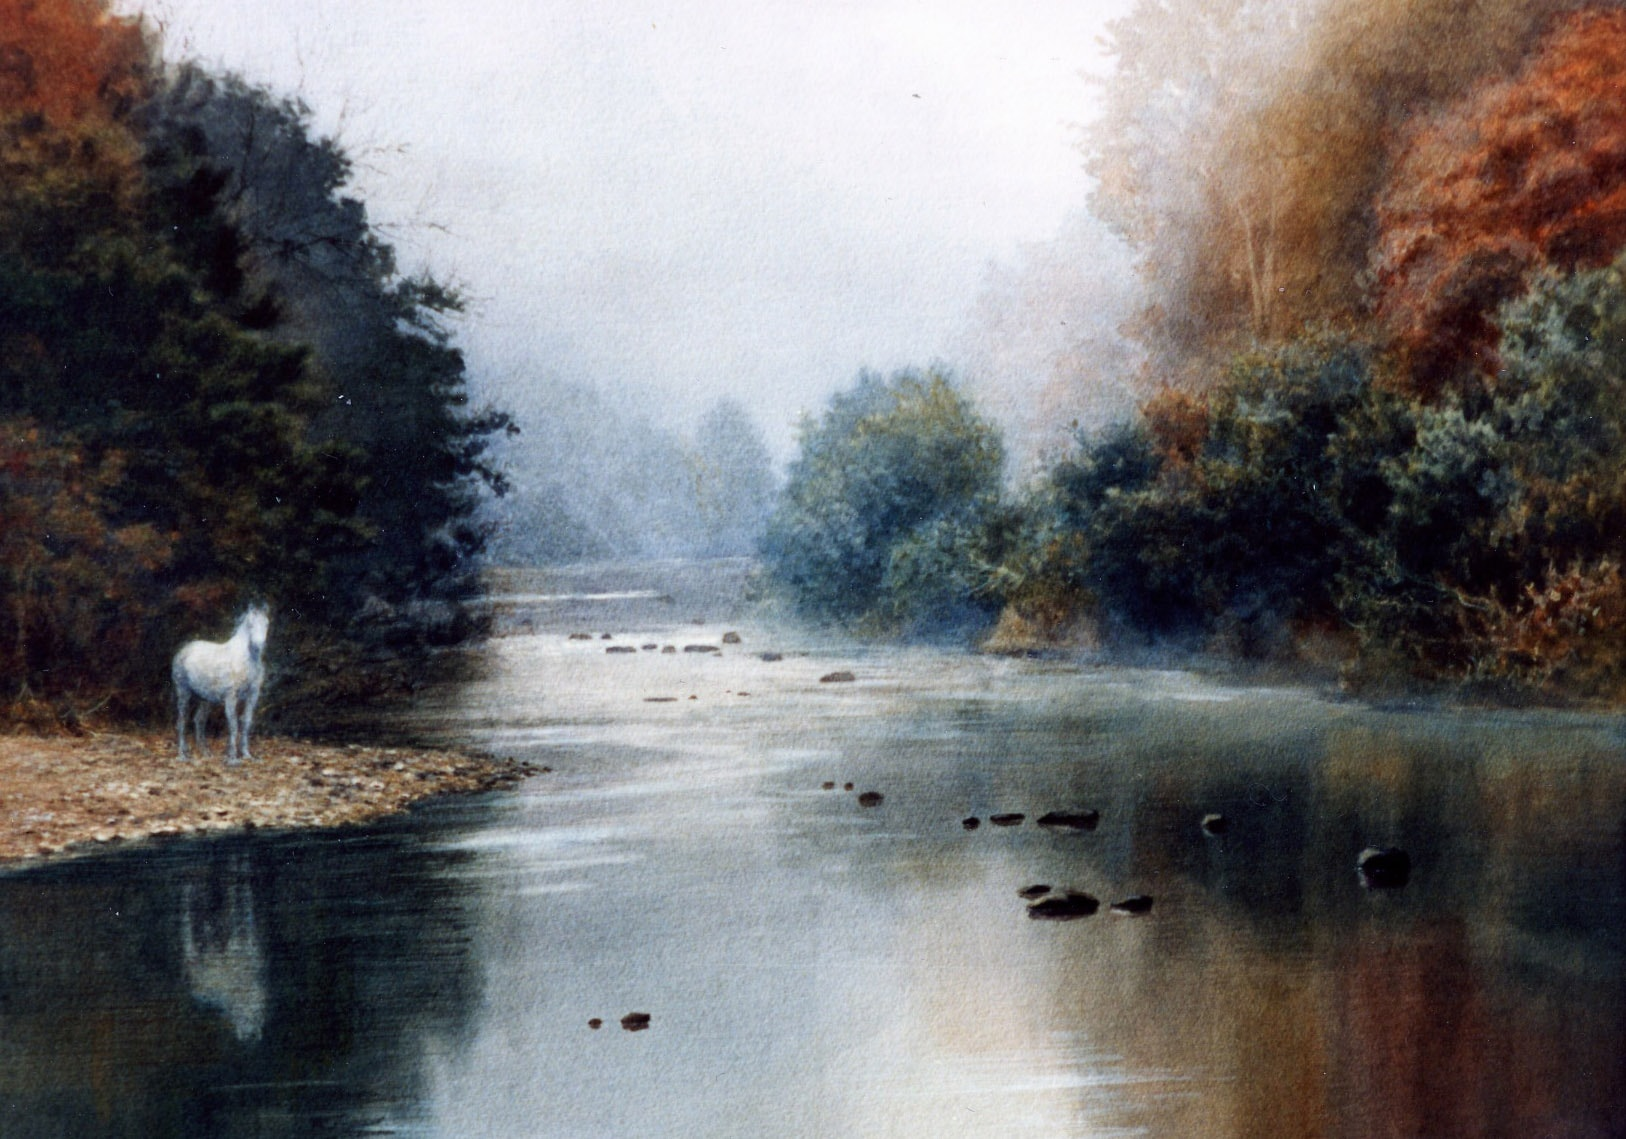 Horse in the Mist (River Bandon) 1987 Oil on Panel 14 x 18